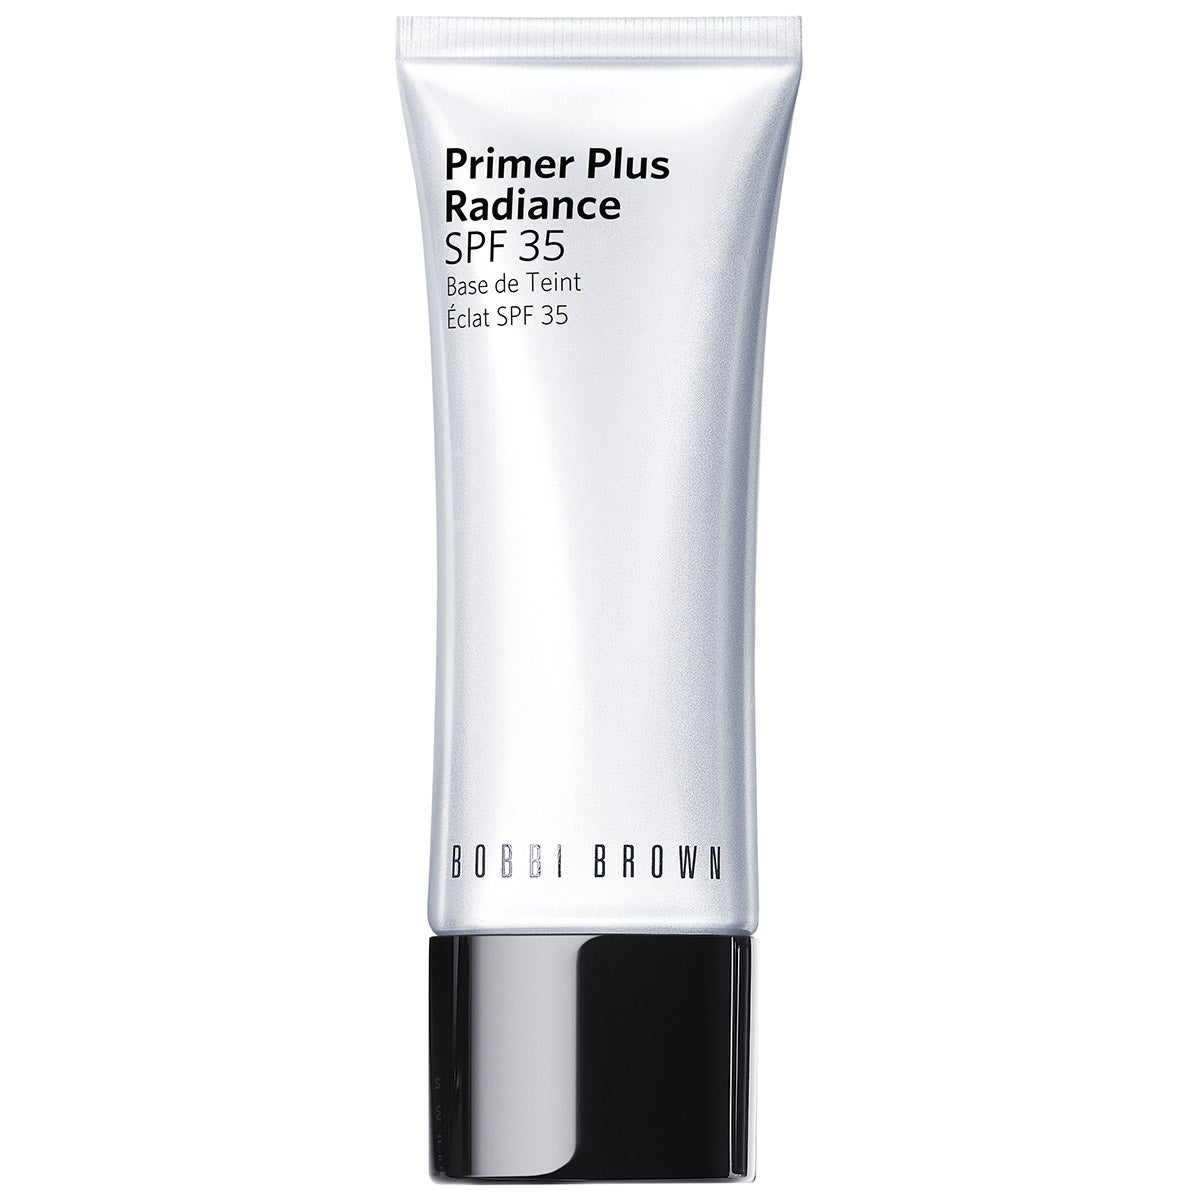 Bobbi Brown Primer Plus Glow SPF35